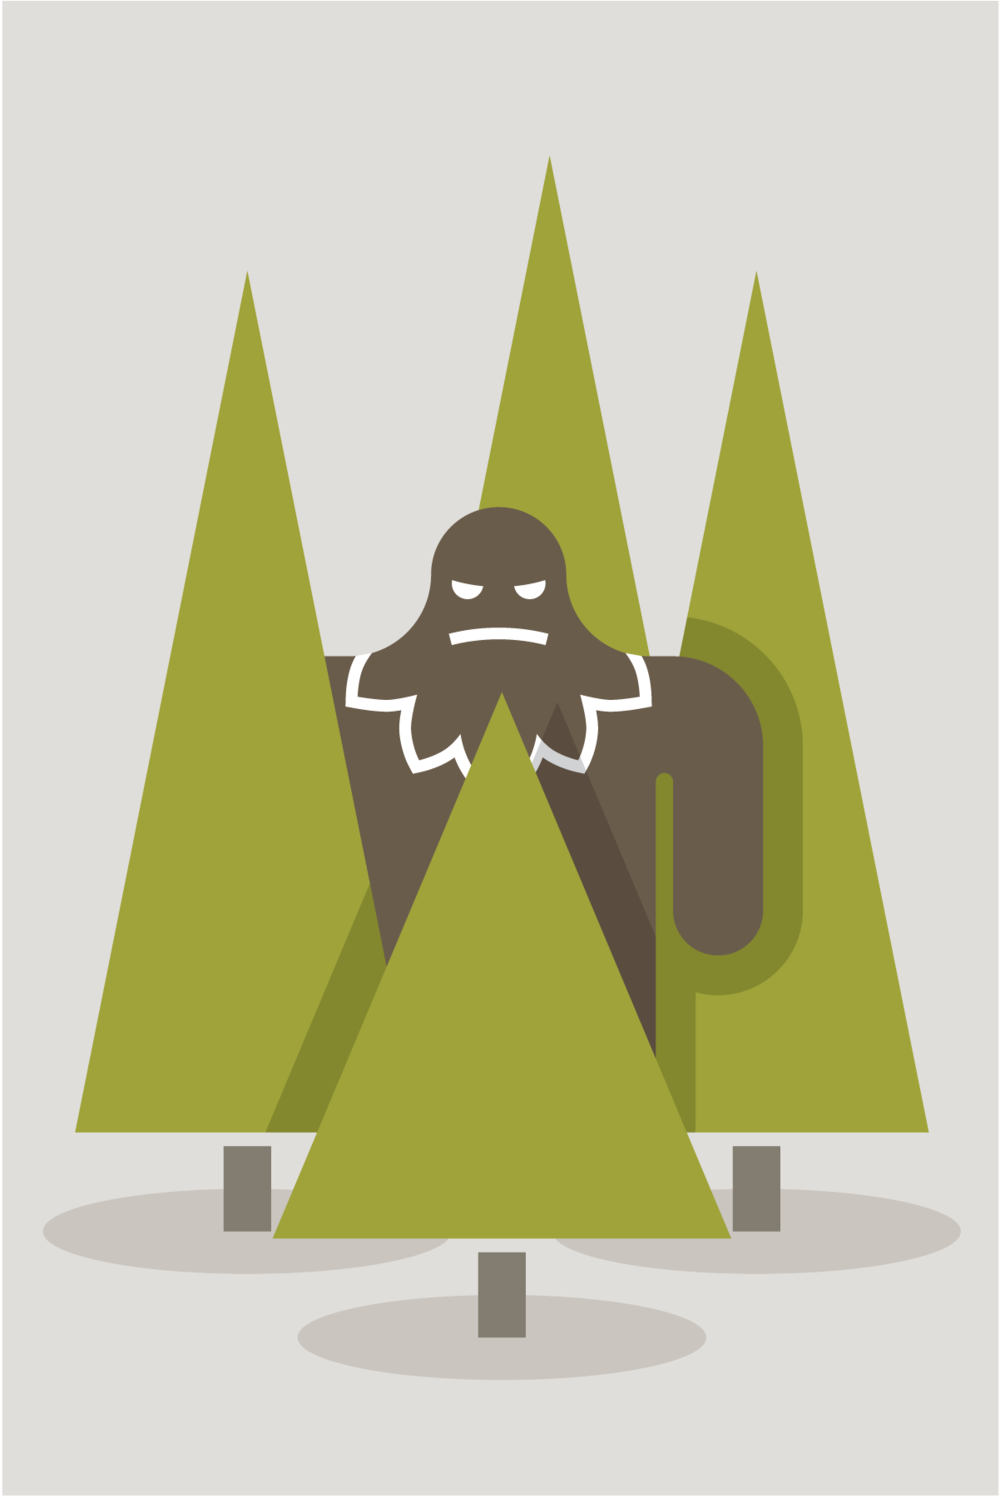 Sasquatch illustration by Mark Mularz of Fetch Design